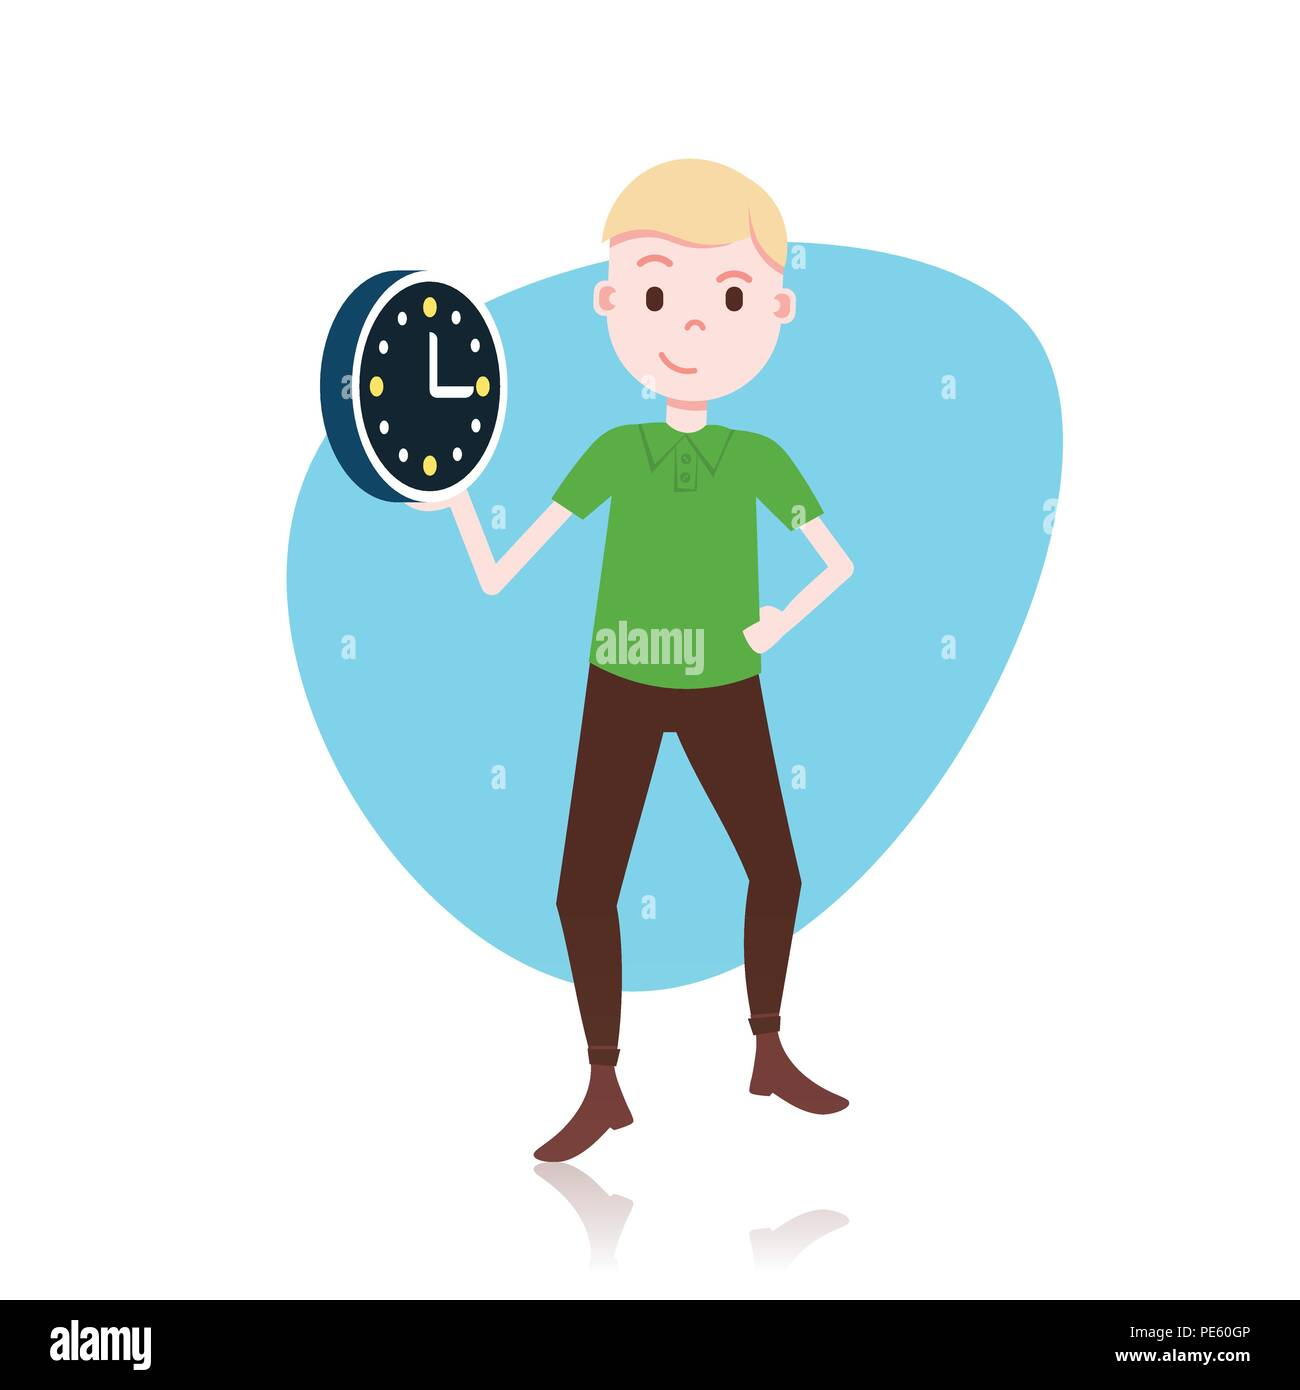 Man Character Holding Wall Clock Template For Design Work Or